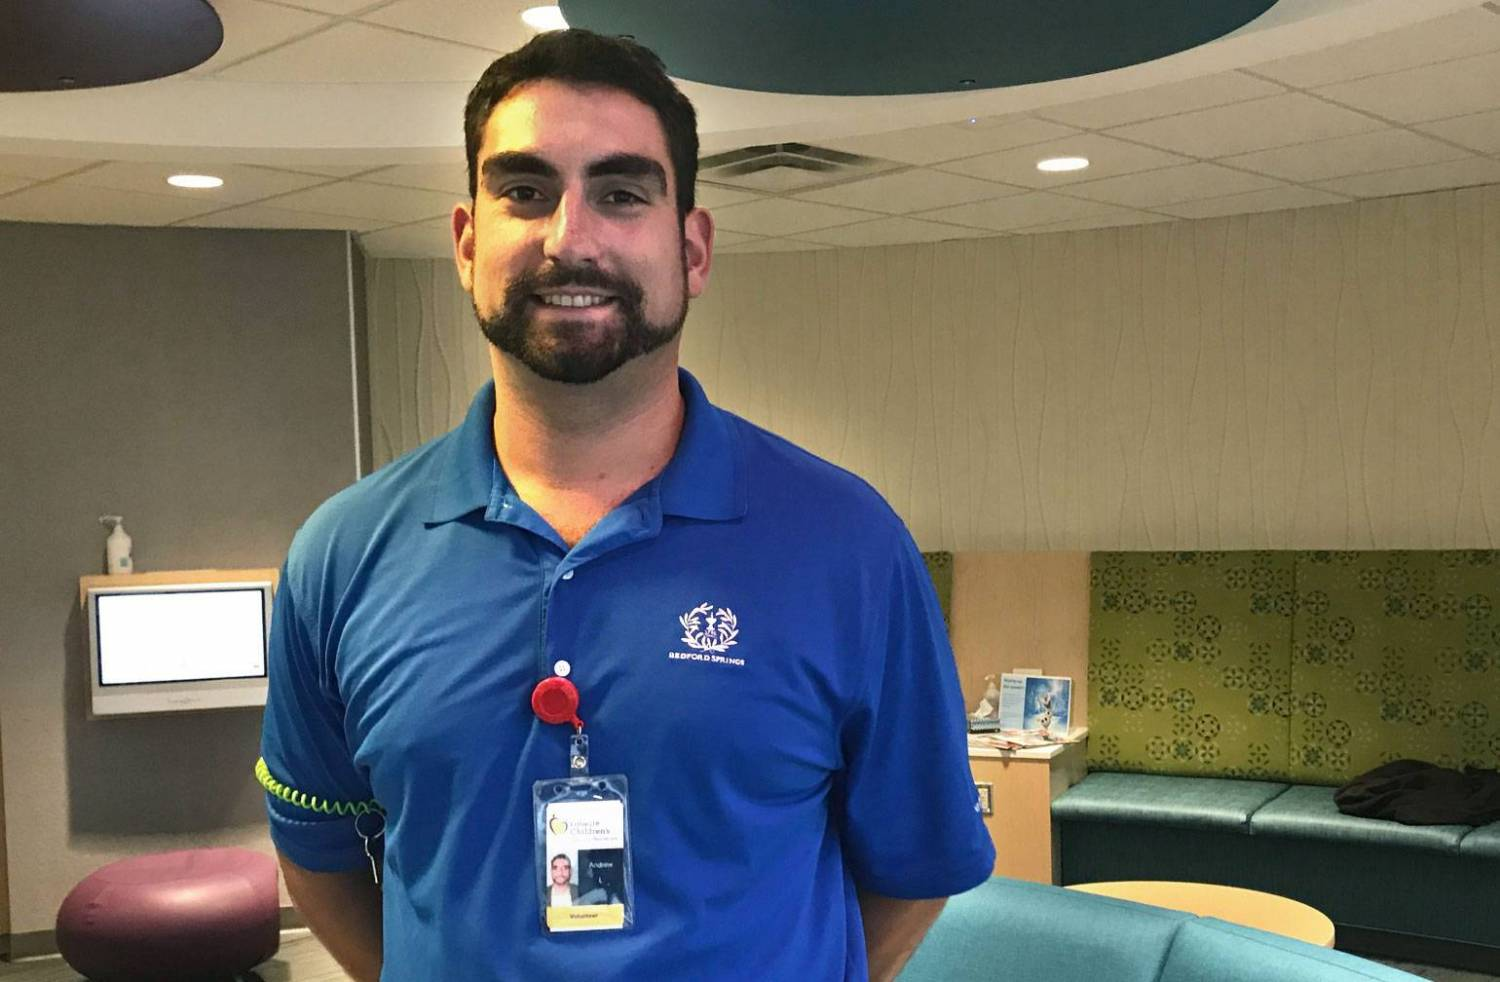 Andrew has been volunteering at Gillette Children's Specialty Healthcare since February 2017.